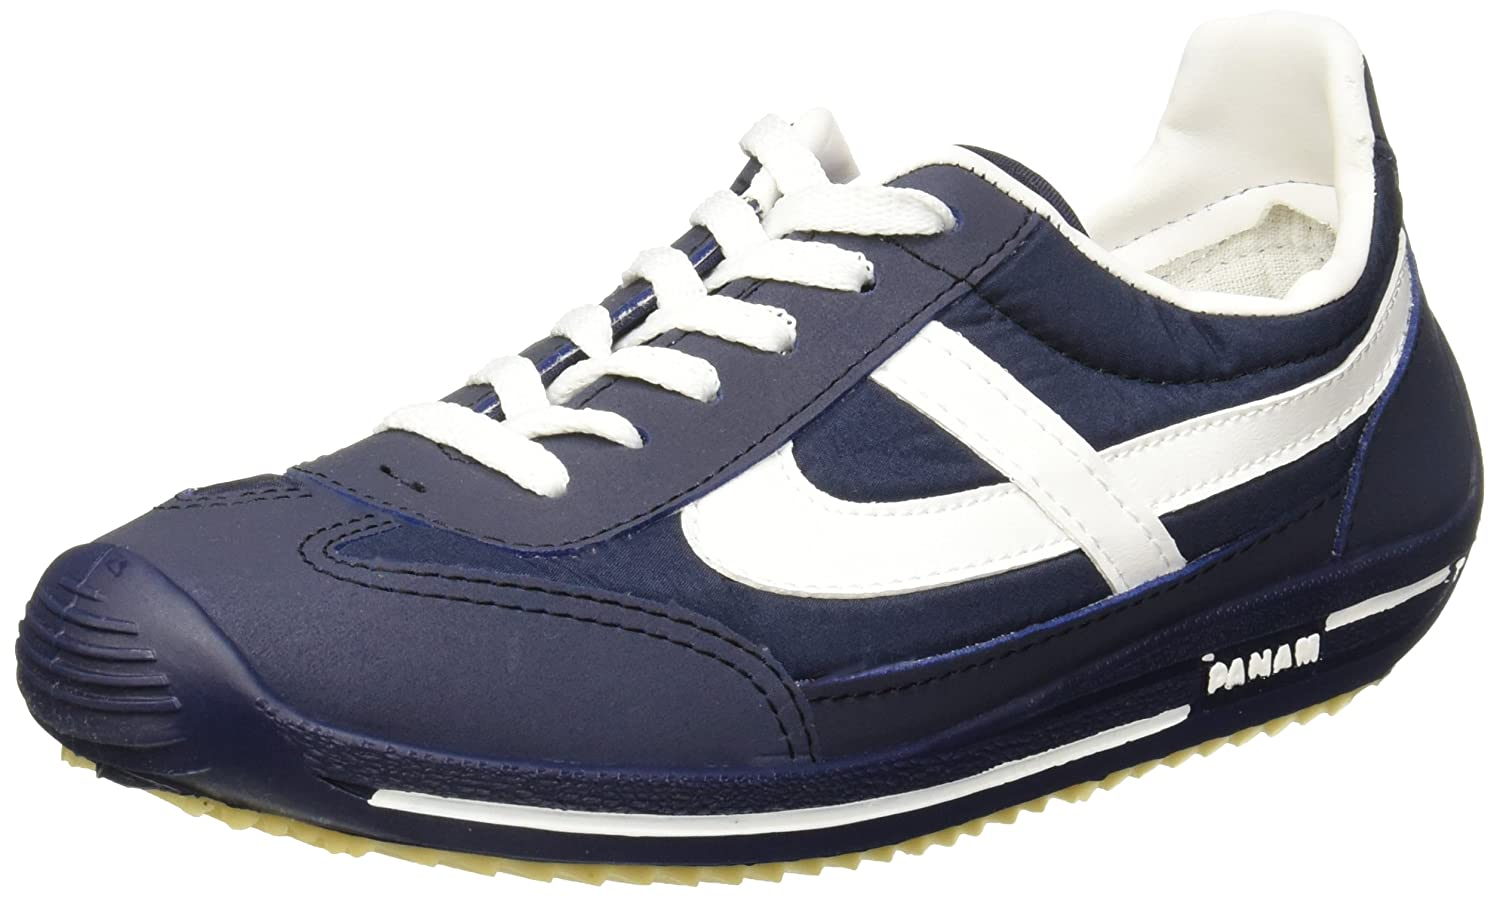 PANAM Classic Tennis Shoe | Handcrafted Zapatillas | Hecho En México Since 1962 B06X185QQD 10 Men's / 11.5 Women's US|Navy Blue